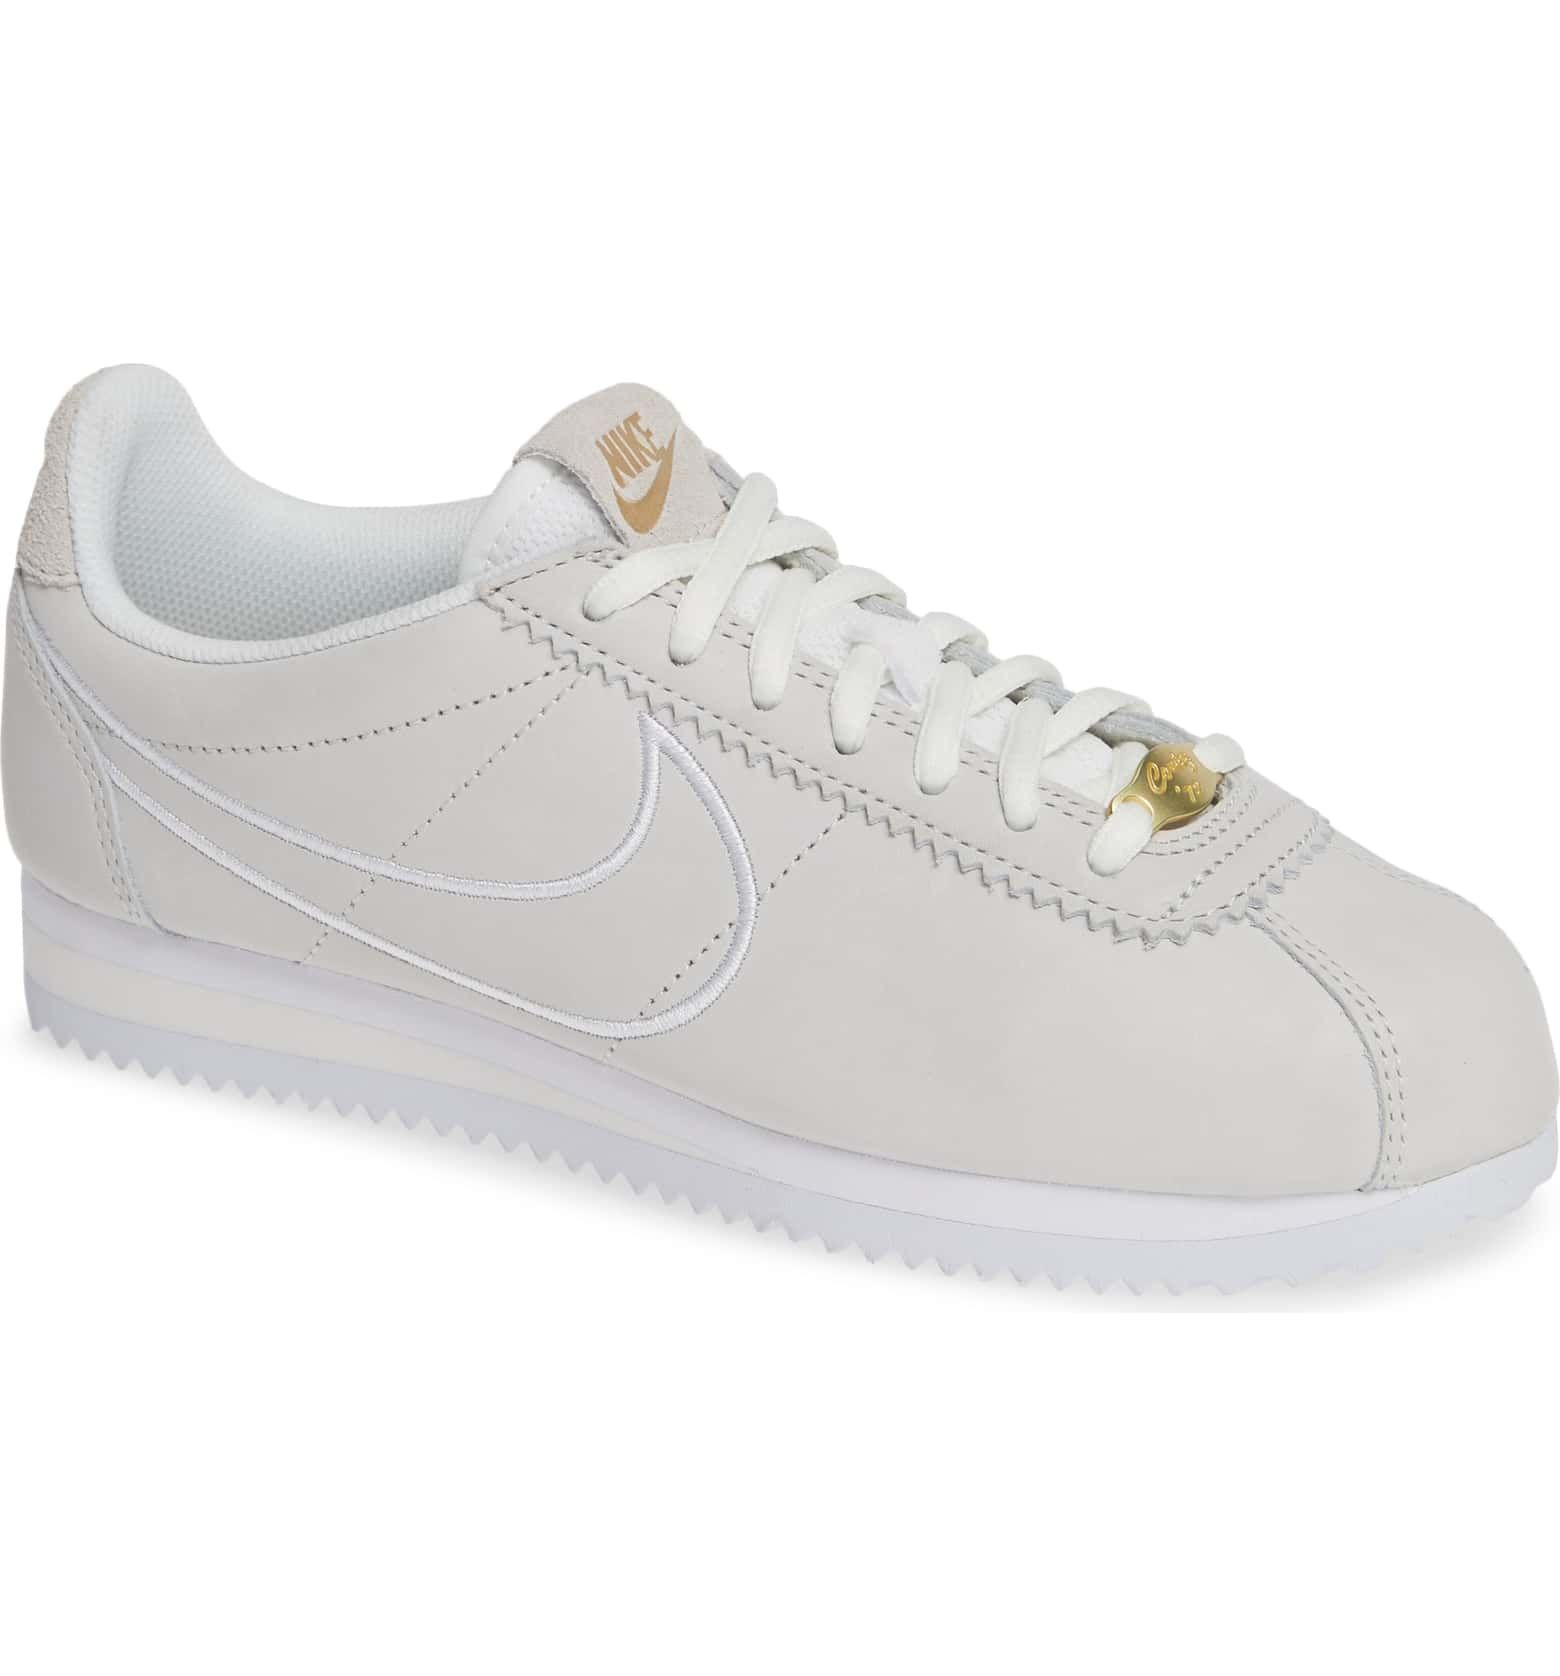 sports shoes 3355e 98be4 Classic Cortez Sneaker, Main, color, WHITE  PHANTOM  WHITE  GOLD